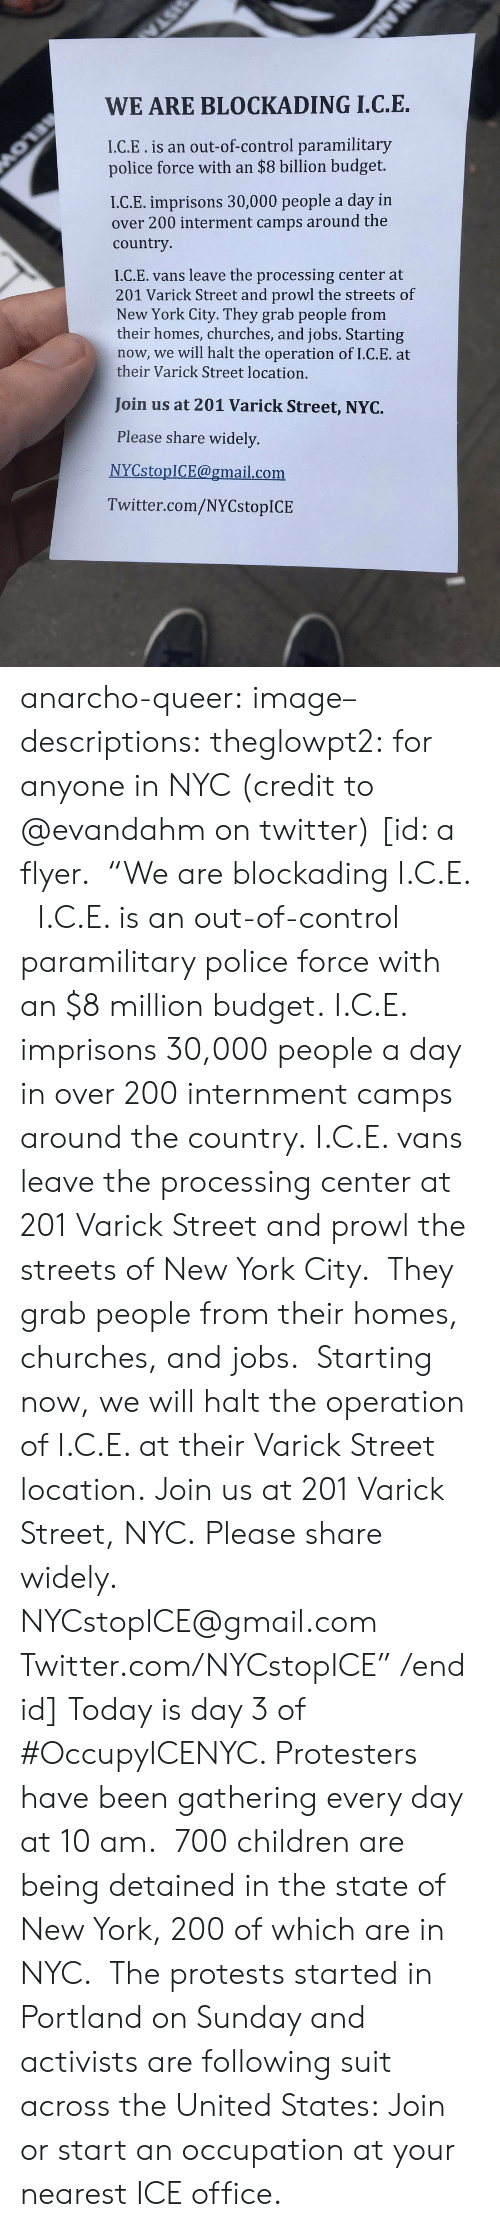 "Children, New York, and Police: WE ARE BLOCKADING I.C.E.  I.C.E.is an out-of-control paramilitary  police force with an $8 billion budget.  I.C.E. imprisons 30,000 people a day in  over 200 interment camps around the  country  I.C.E. vans leave the processing center at  201 Varick Street and prowl the streets of  New York City. They grab people from  their homes, churches, and jobs. Starting  now, we will halt the operation of I.C.E. at  their Varick Street location.  Join us at 201 Varick Street, NYC.  Please share widely.  NYCstopICE@gmail.com  Twitter.com/NYCstopICE anarcho-queer: image–descriptions:  theglowpt2: for anyone in NYC (credit to @evandahm on twitter) [id: a flyer.  ""We are blockading I.C.E.   I.C.E. is an out-of-control paramilitary police force with an $8 million budget. I.C.E. imprisons 30,000 people a day in over 200 internment camps around the country. I.C.E. vans leave the processing center at 201 Varick Street and prowl the streets of New York City.  They grab people from their homes, churches, and jobs.  Starting now, we will halt the operation of I.C.E. at their Varick Street location. Join us at 201 Varick Street, NYC. Please share widely. NYCstopICE@gmail.com Twitter.com/NYCstopICE"" /end id]  Today is day 3 of #OccupyICENYC. Protesters have been gathering every day at 10 am.  700 children are being detained in the state of New York, 200 of which are in NYC.  The protests started in Portland on Sunday and activists are following suit across the United States: Join or start an occupation at your nearest ICE office."